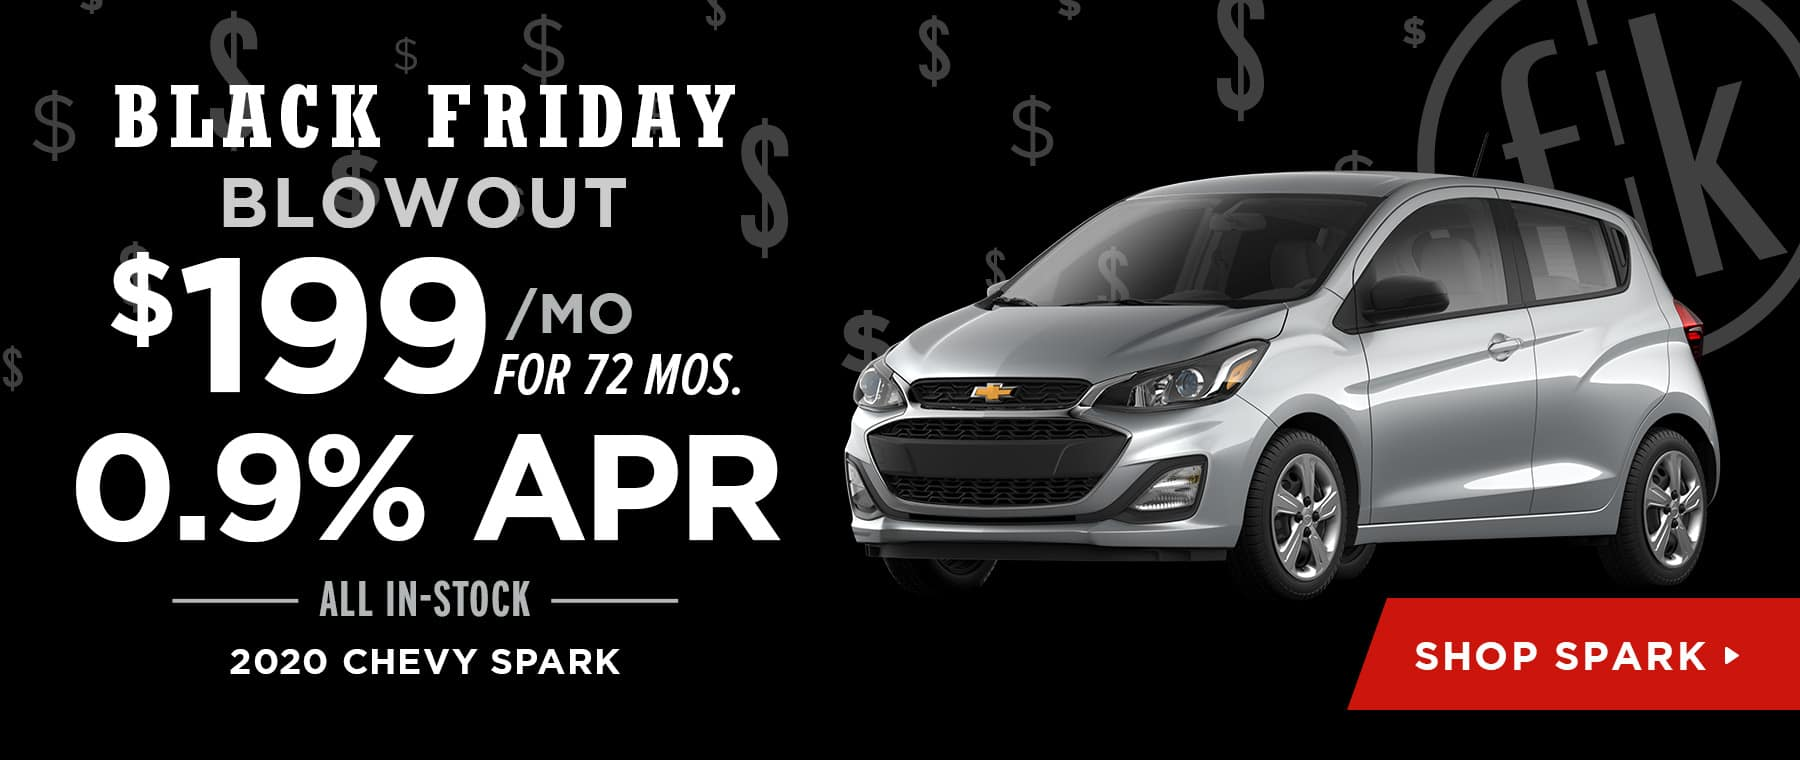 $199/mo. for 72 mos. & 0.9% APR All In-Stock 2020 Chevy Spark